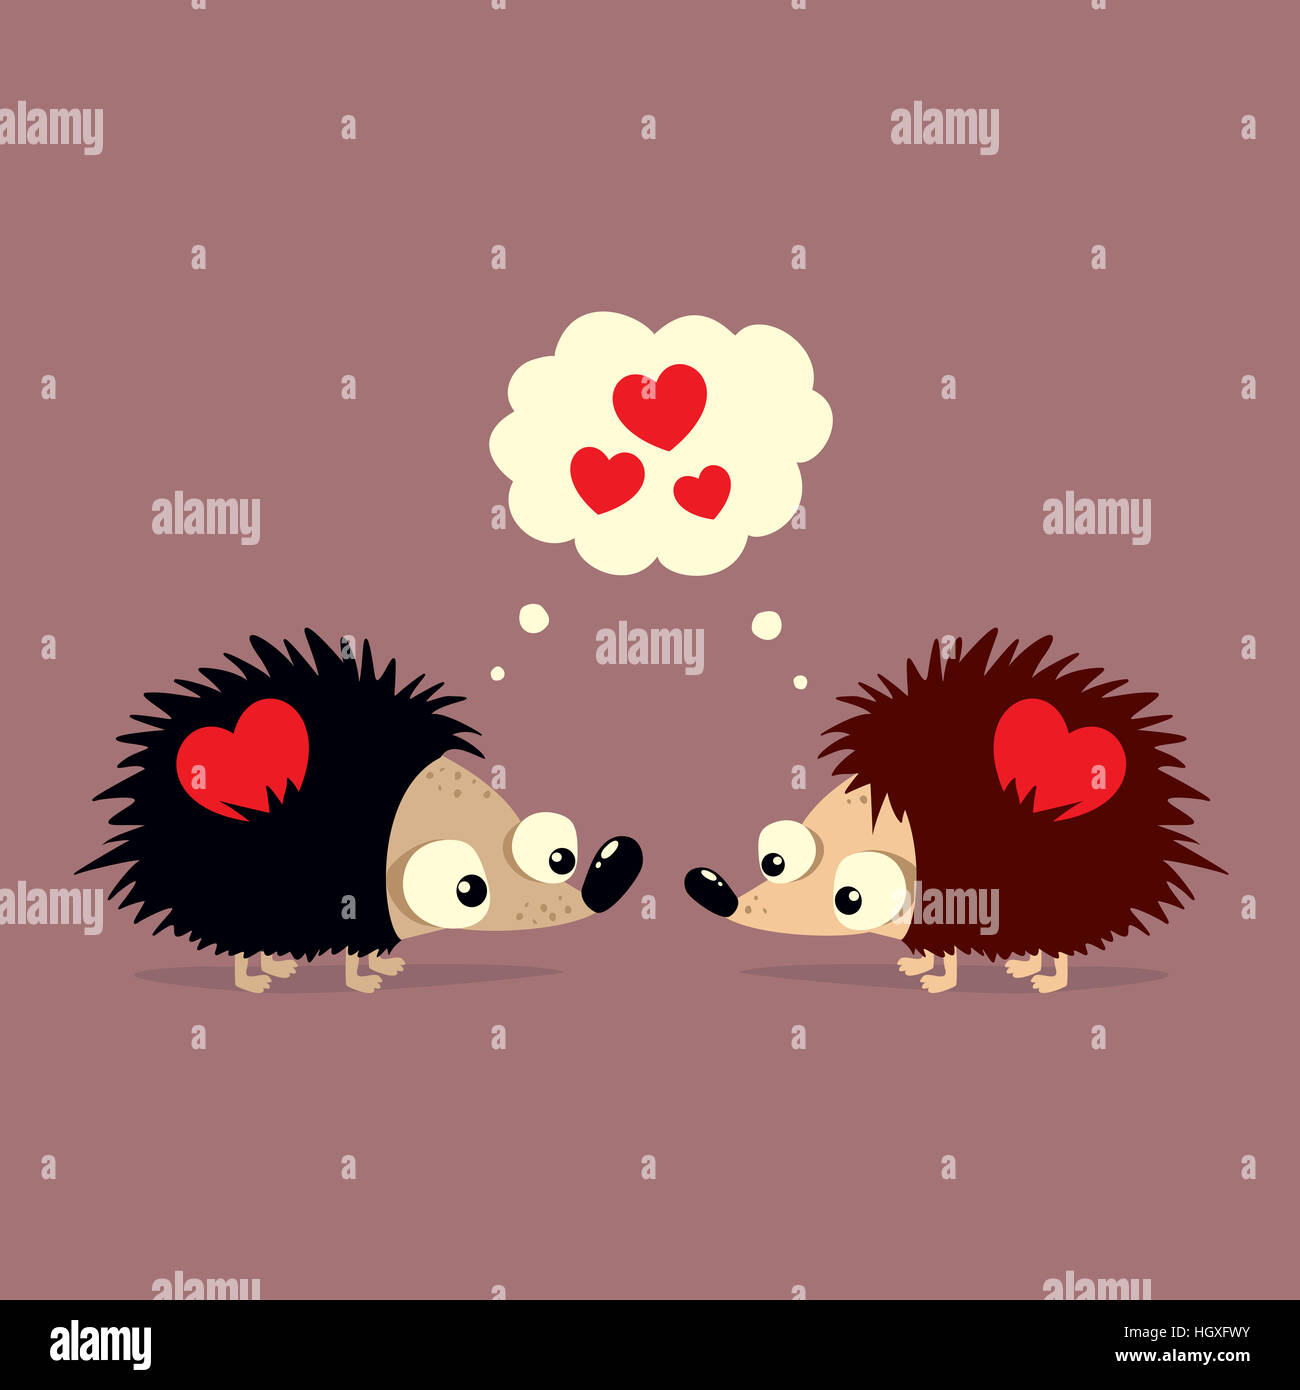 Cute Valentine's Day card with two cartoon hedgehogs falling in love with each other - Stock Image